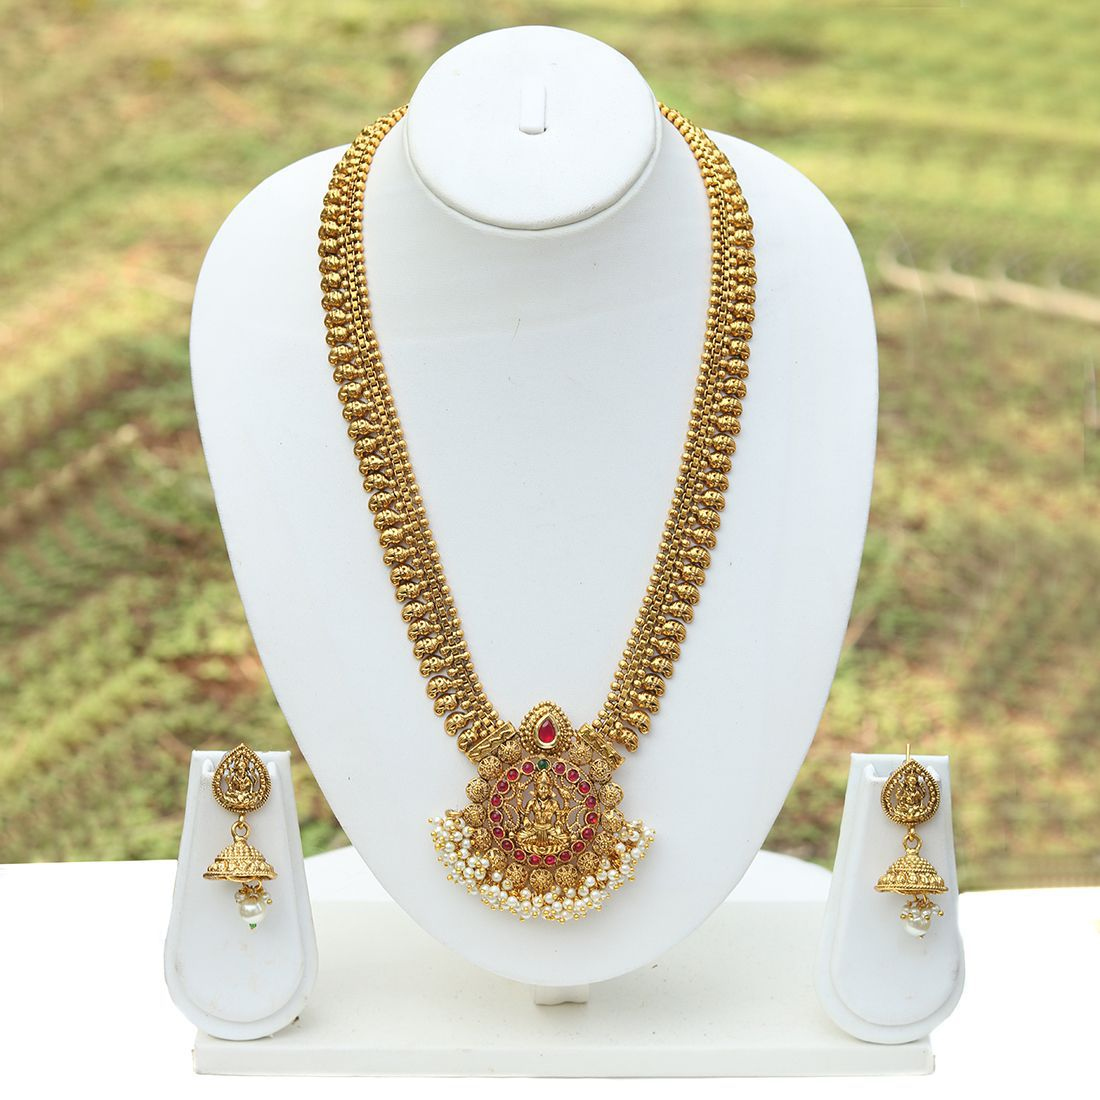 781c4add88 Green & Maroon Laxmi Temple Design Gold Plated Antique Artificial Long  Necklace With Earrings - Buy Green & Maroon Laxmi Temple Design Gold Plated  Antique ...